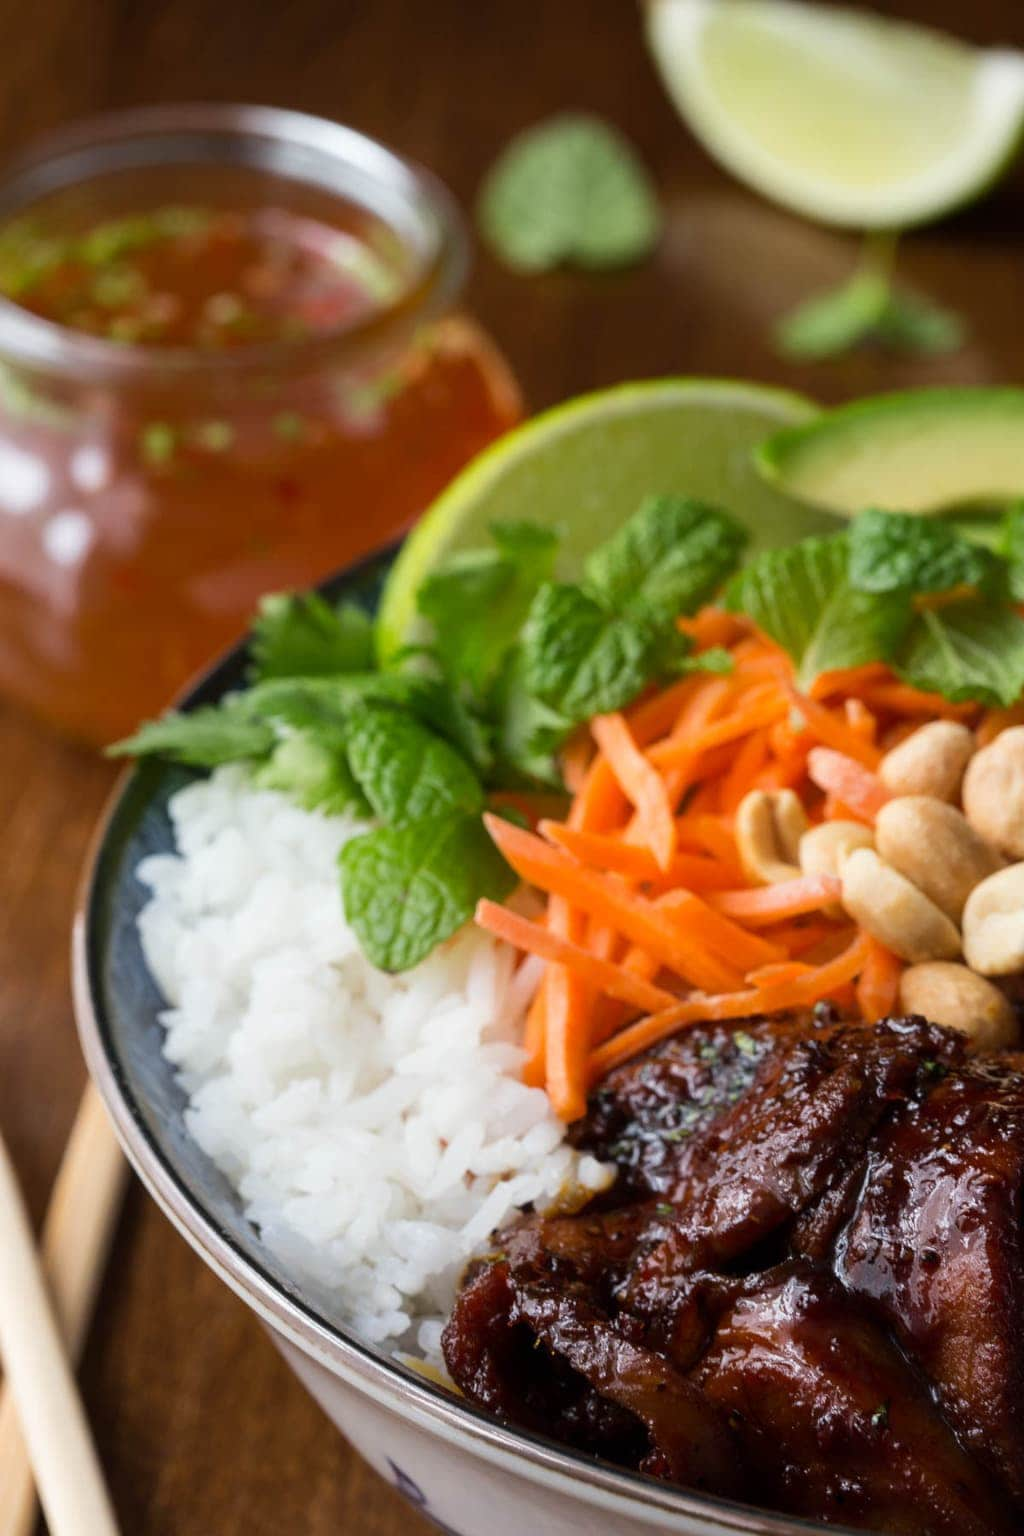 A photo of a bowl of Easy Vietnamese Caramelized Pork on a wood table with lime wedges and a glass jar of traditional Vietnamese dipping sauce surrounding it.